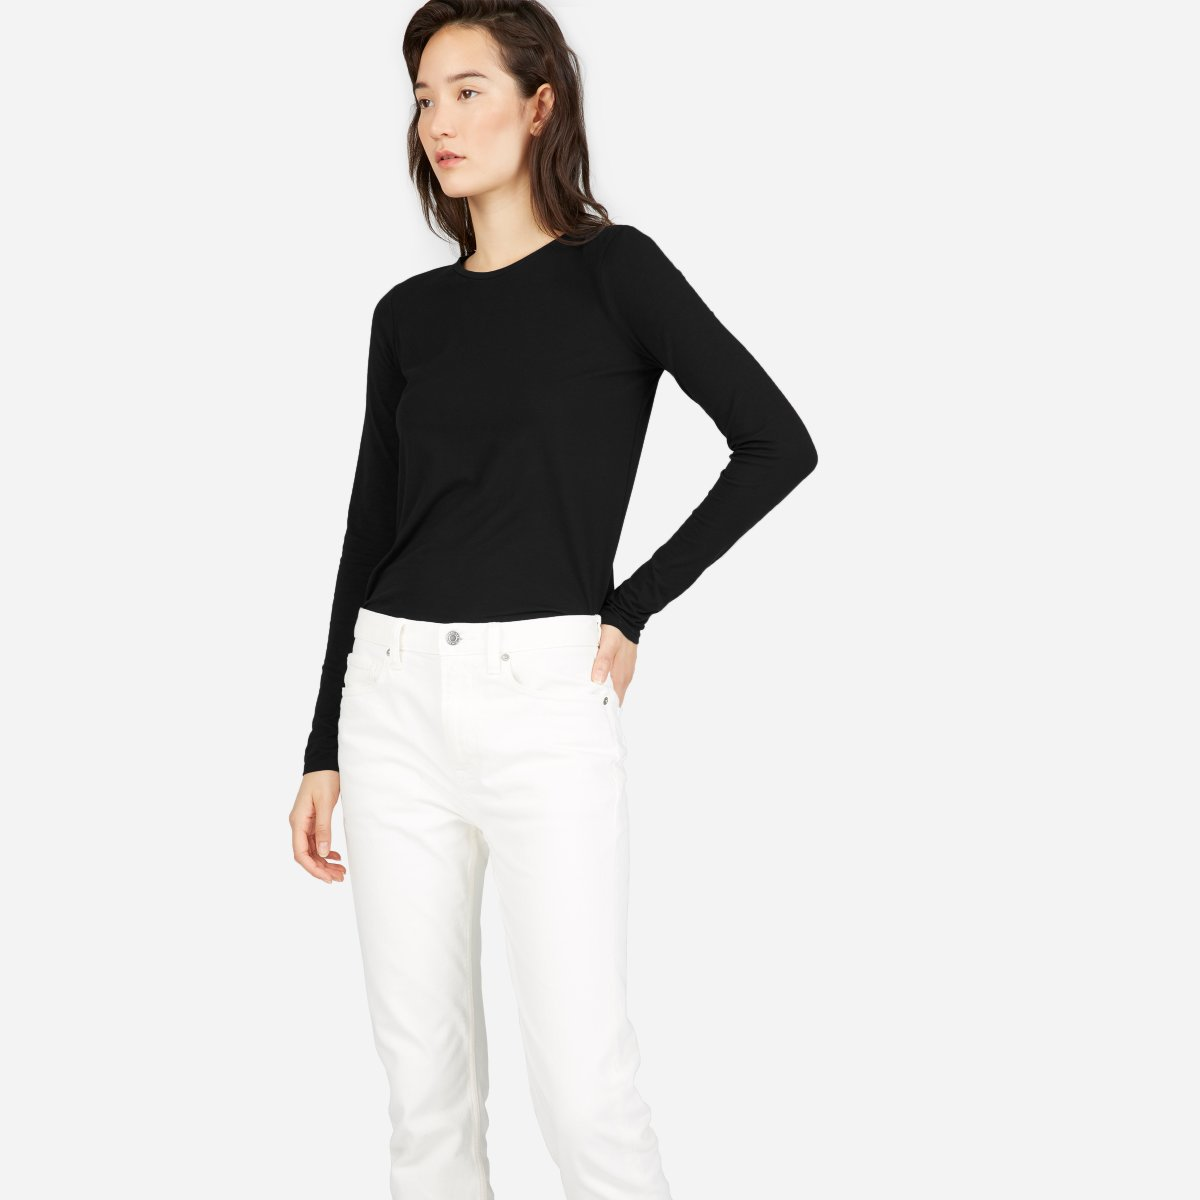 Everlane - The Slim Cotton Long-Sleeve Crew $22